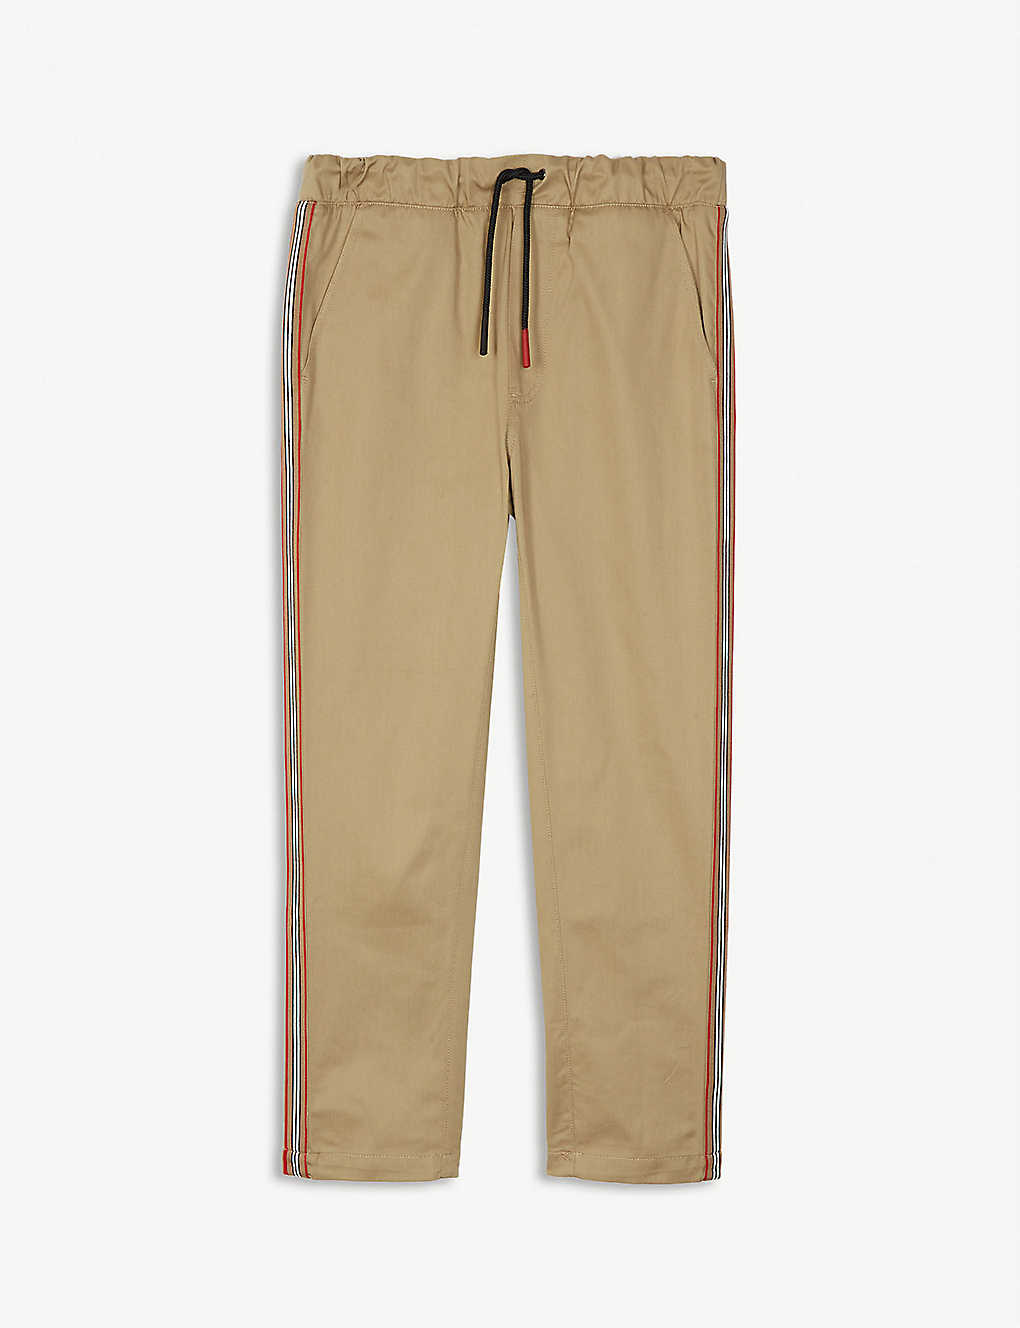 Burberry Pants Curran Icon stripe cotton chinos 3-14 years